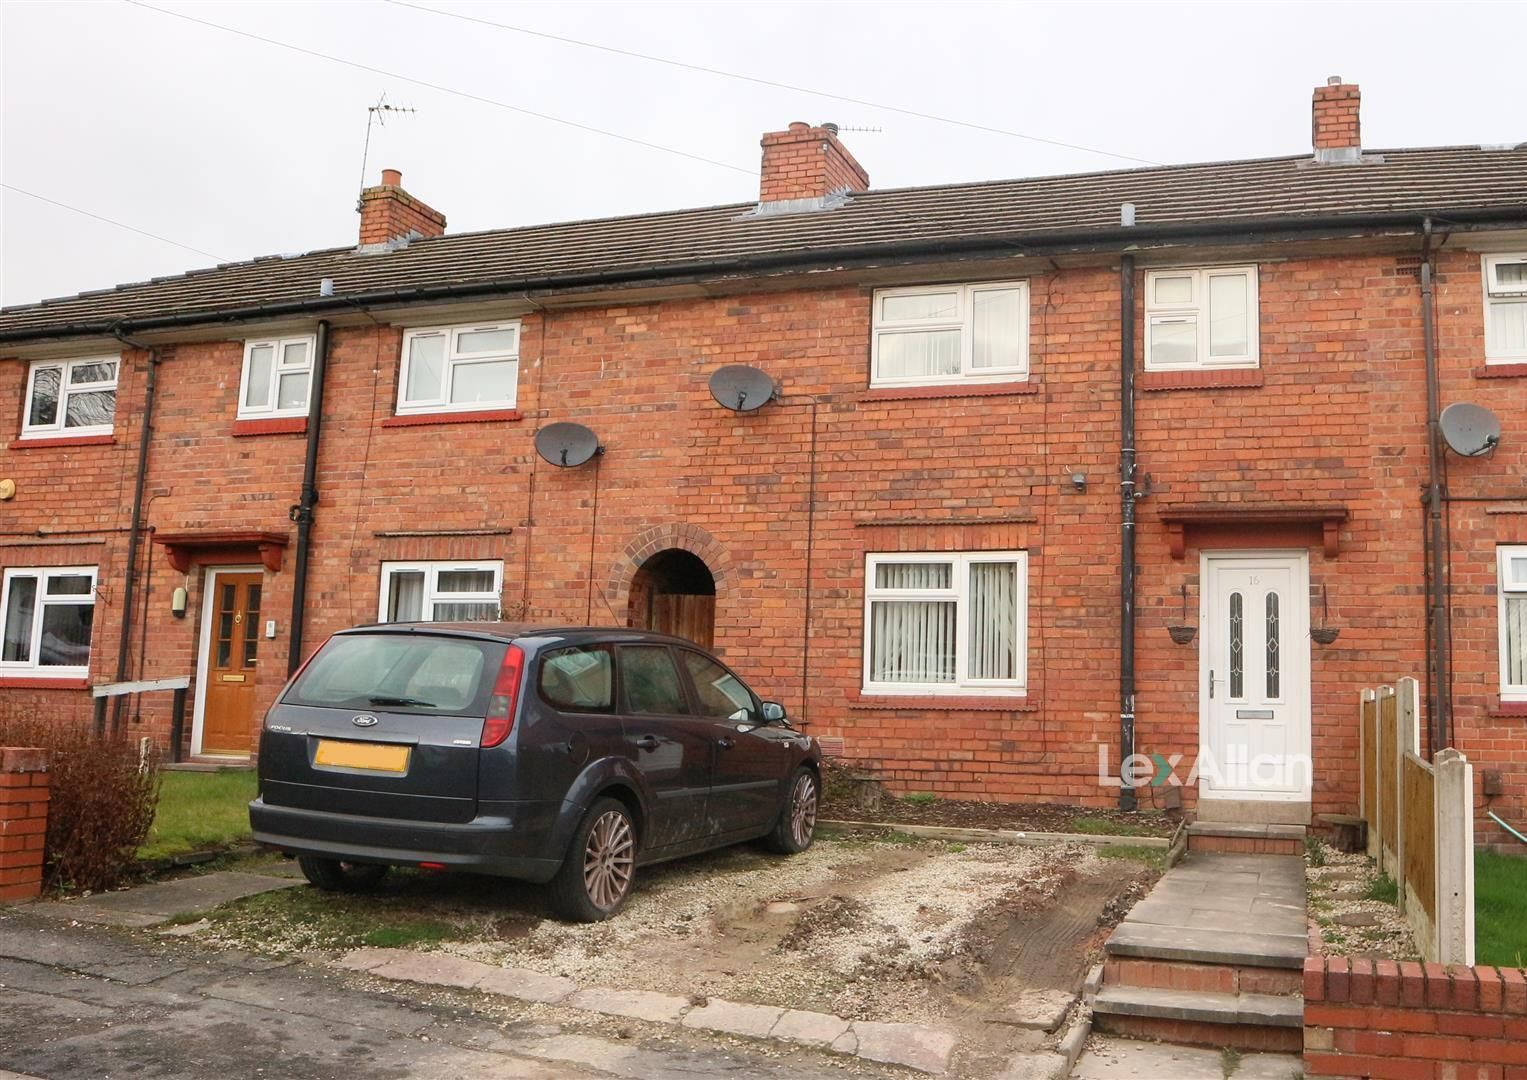 3 bed terraced for sale, DY1